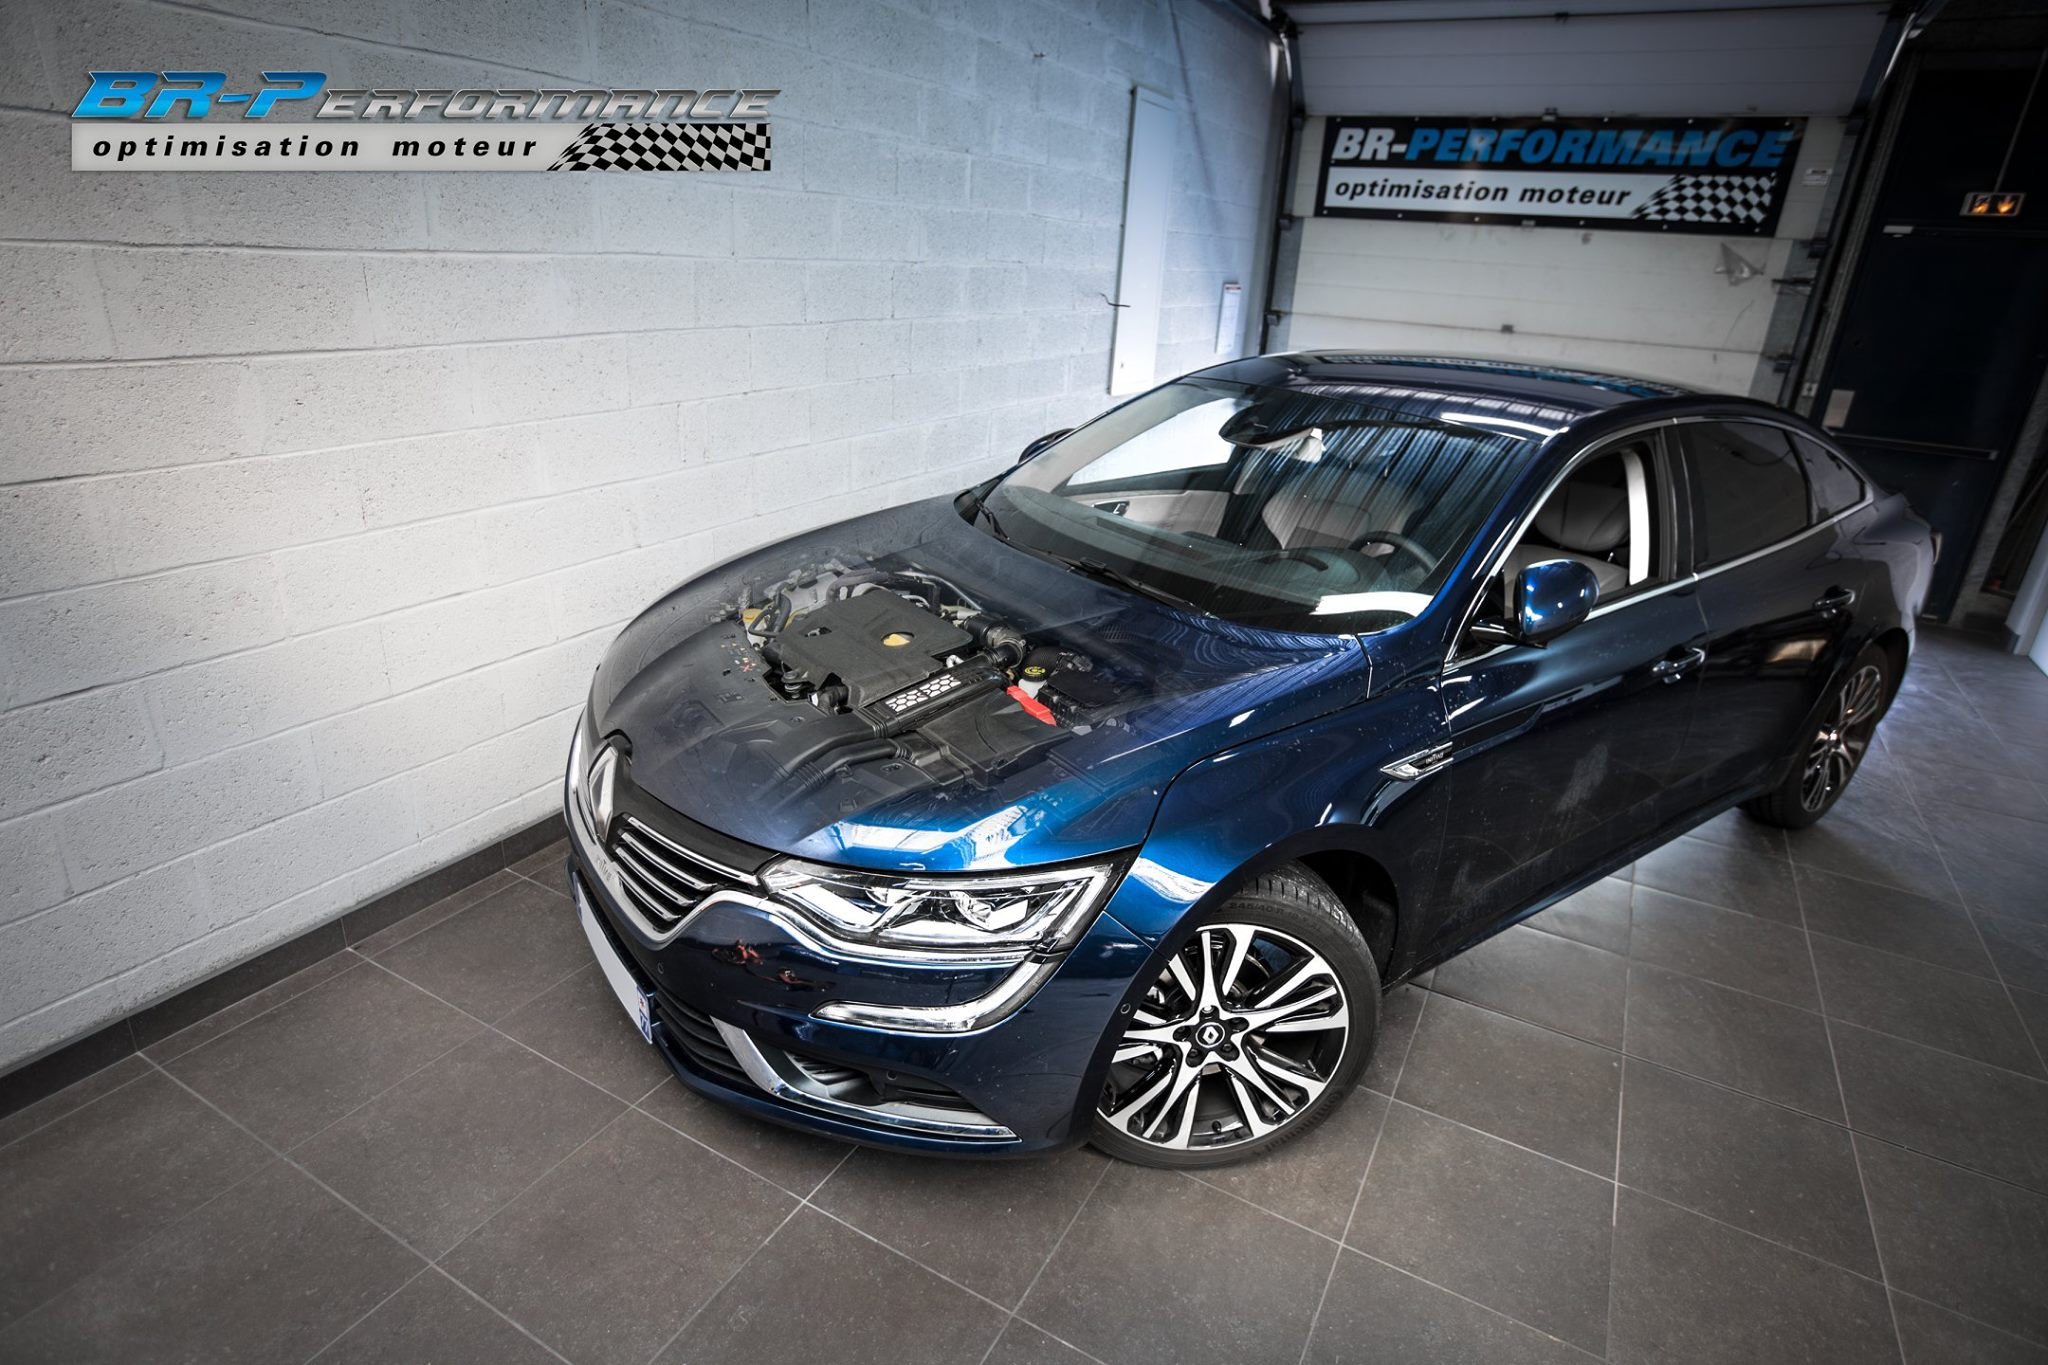 Renault Talisman 1 6 Dci 130 Gets Tuned To 160 Ps By Br